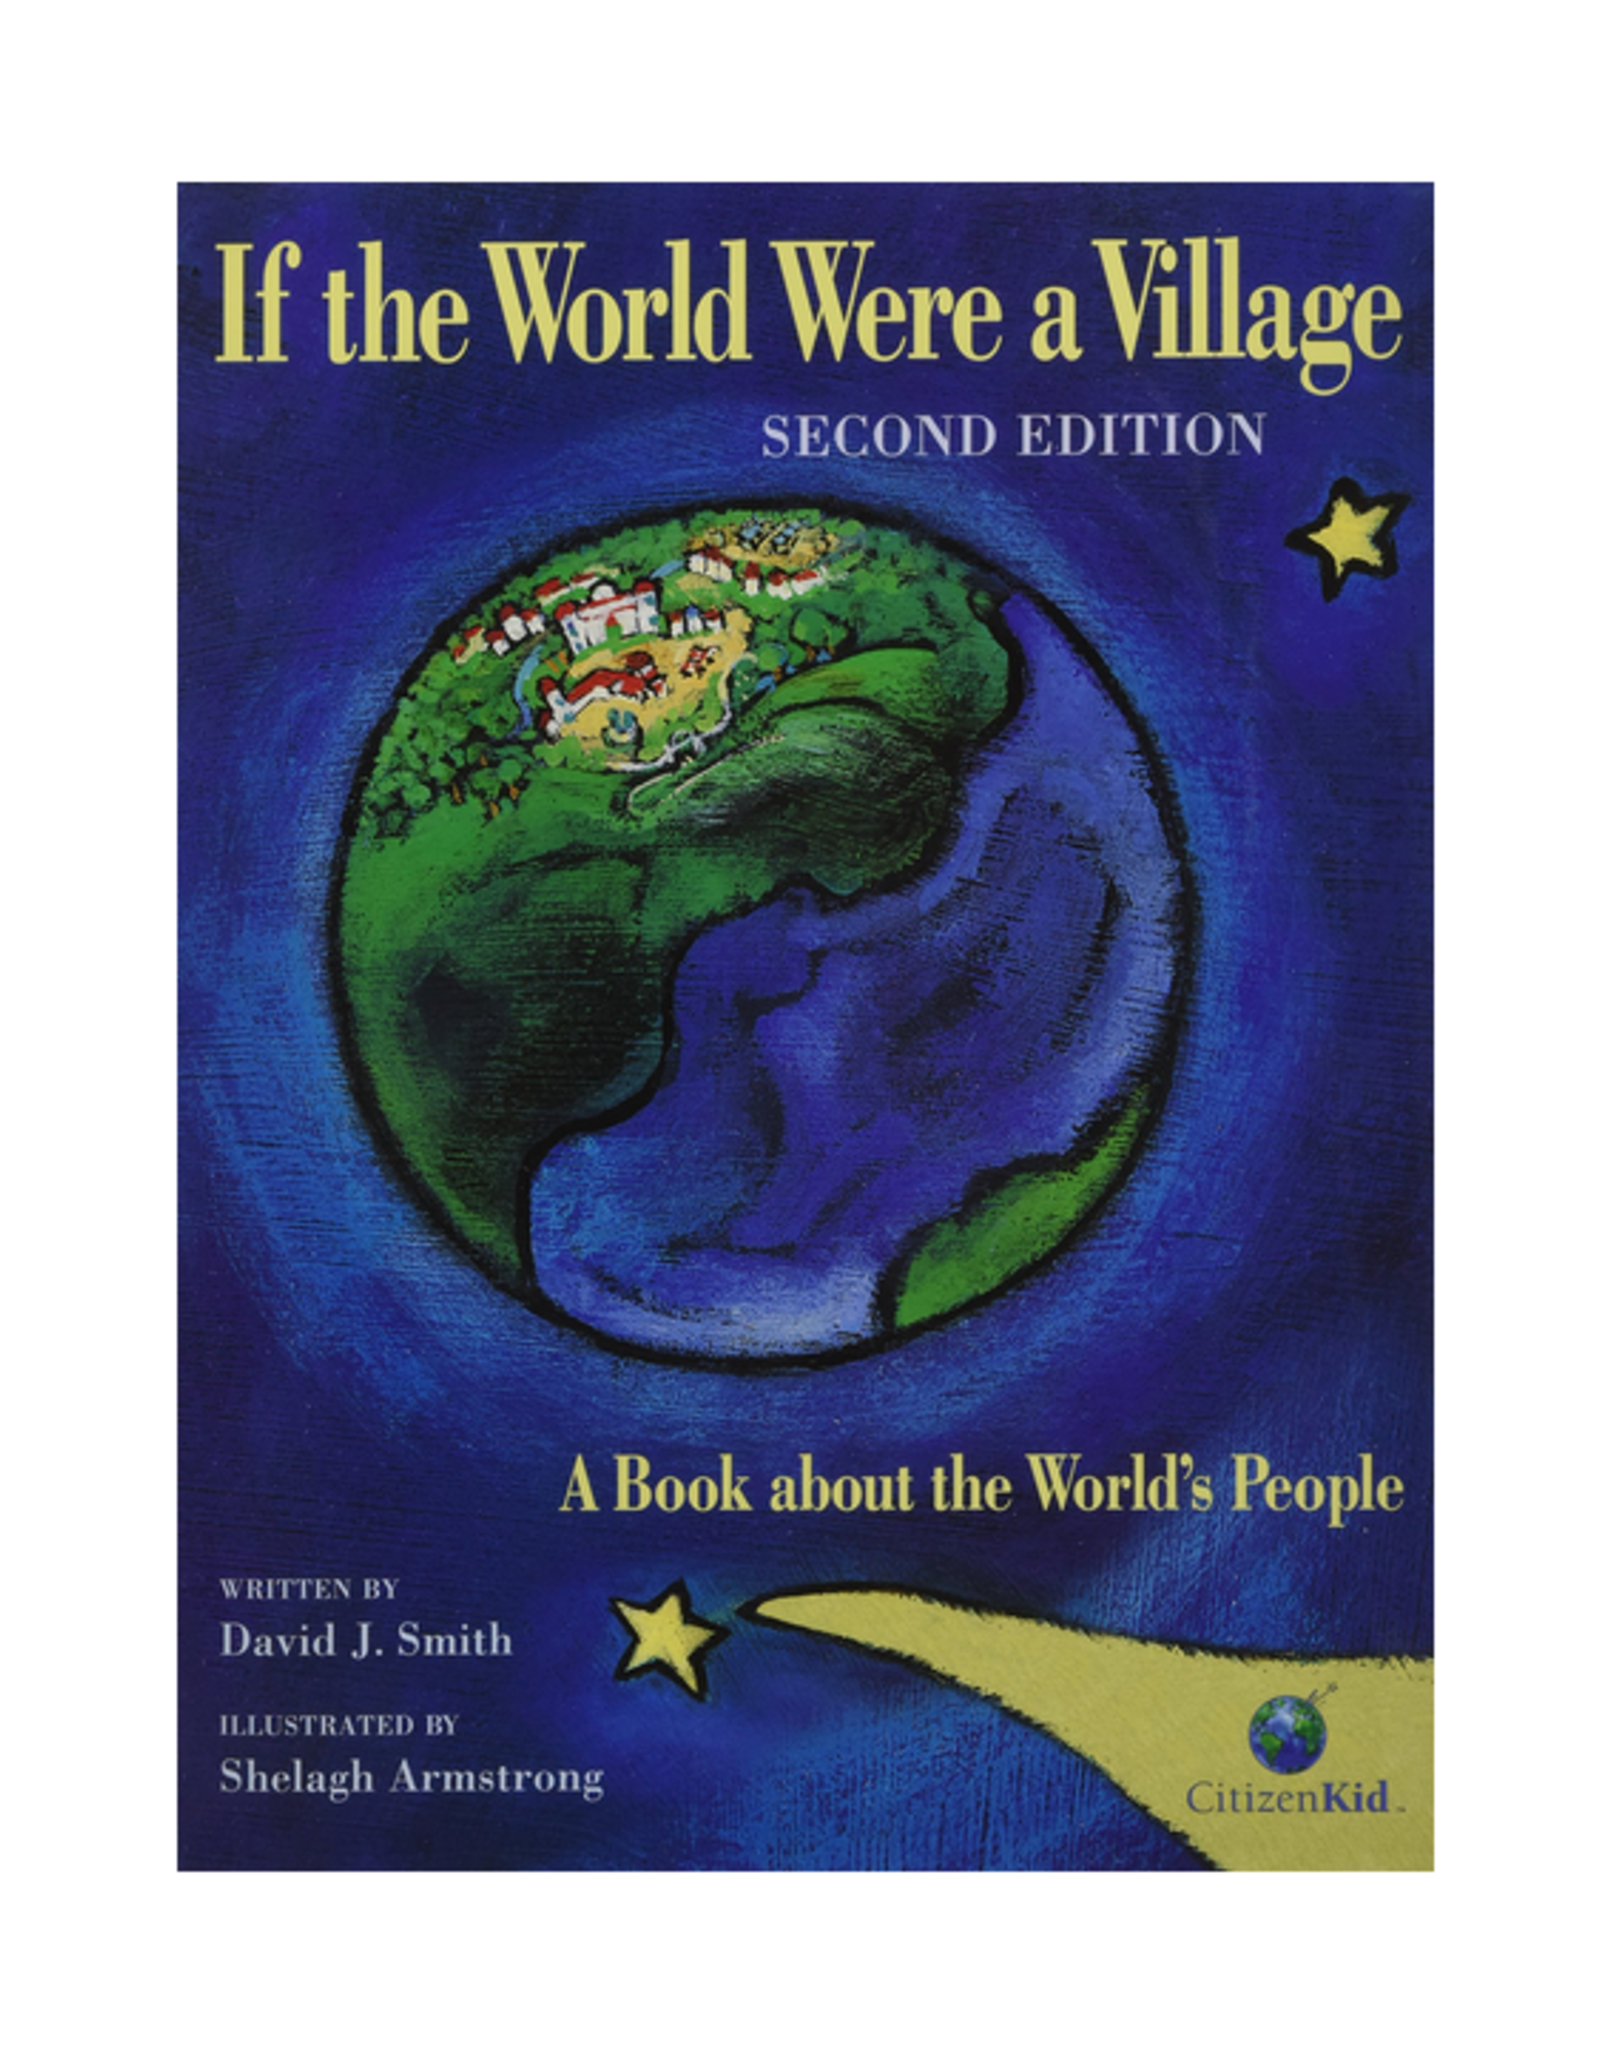 If the World Were a Village - A Book about the World's People